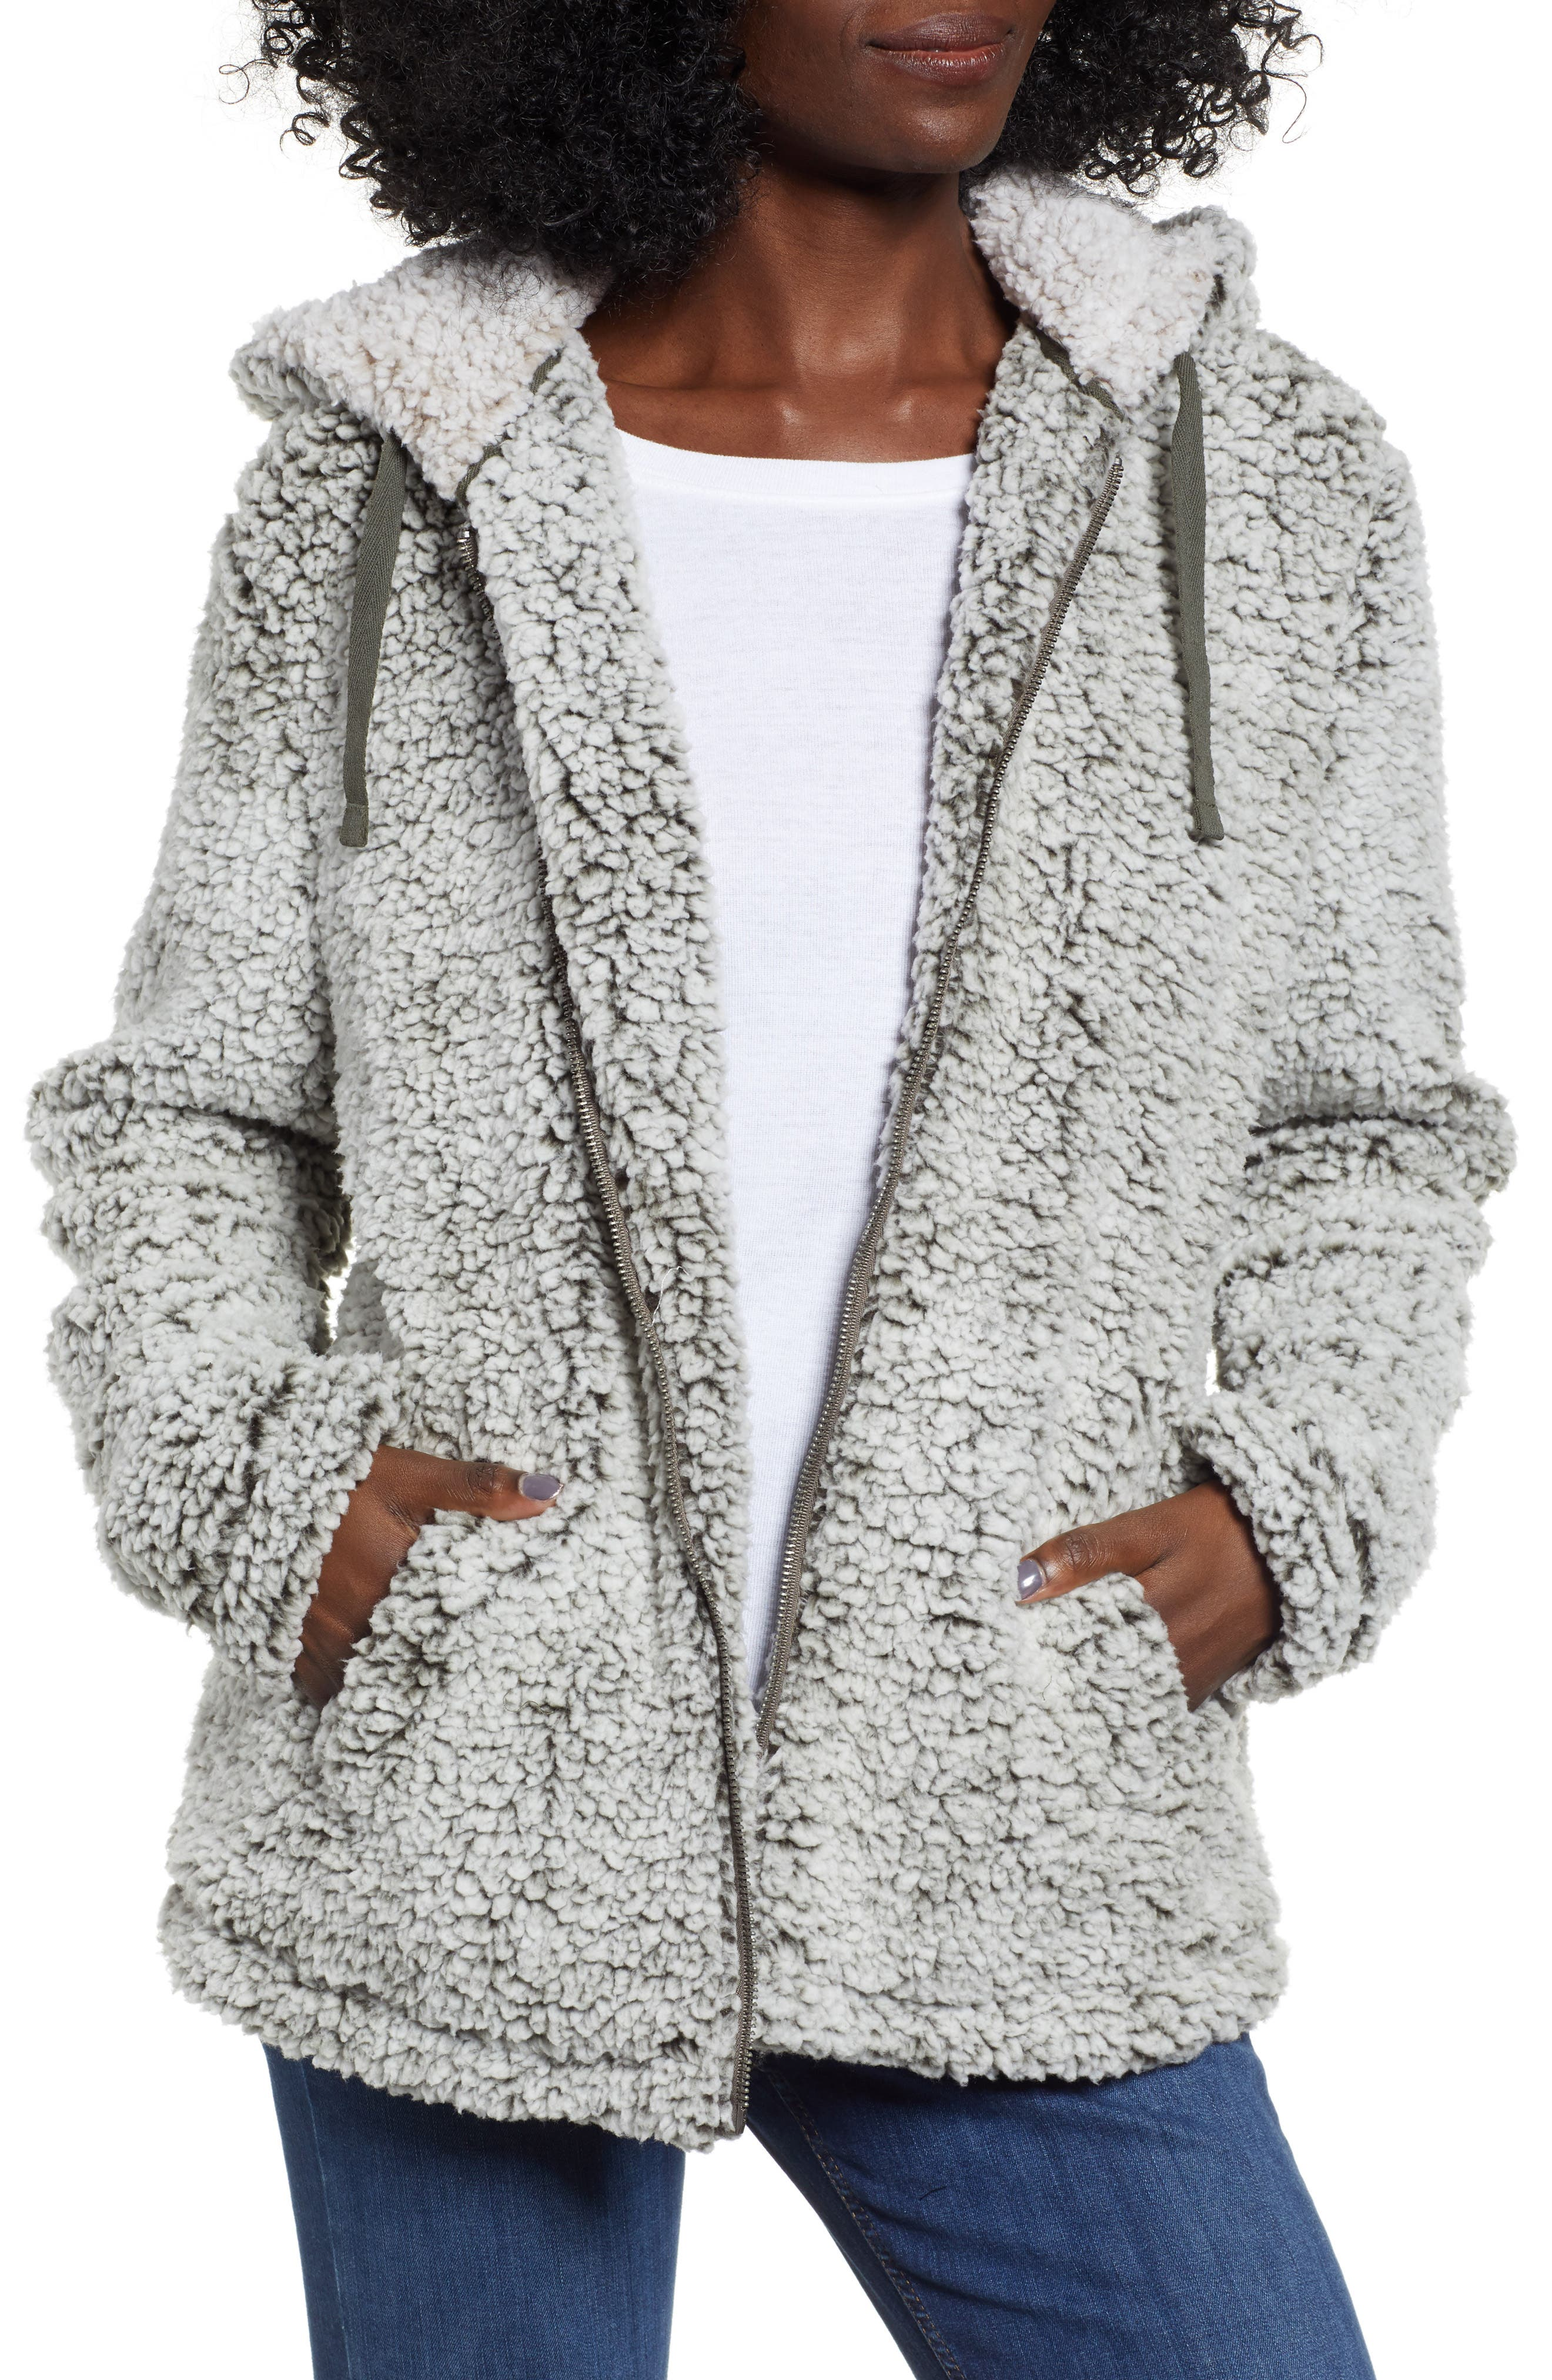 Brandon Fleece Jacket,                             Main thumbnail 1, color,                             300